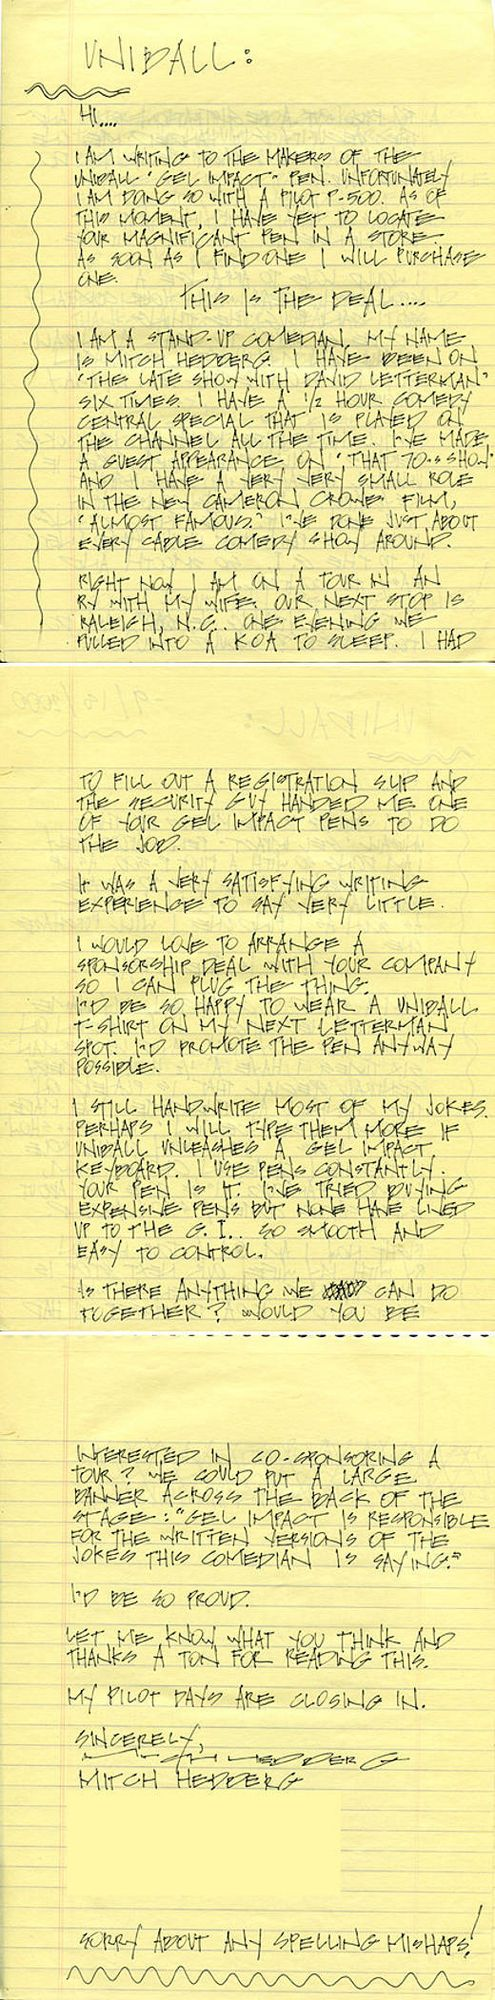 Mitch Hedberg's Letter To The Uni-Ball Pen Company